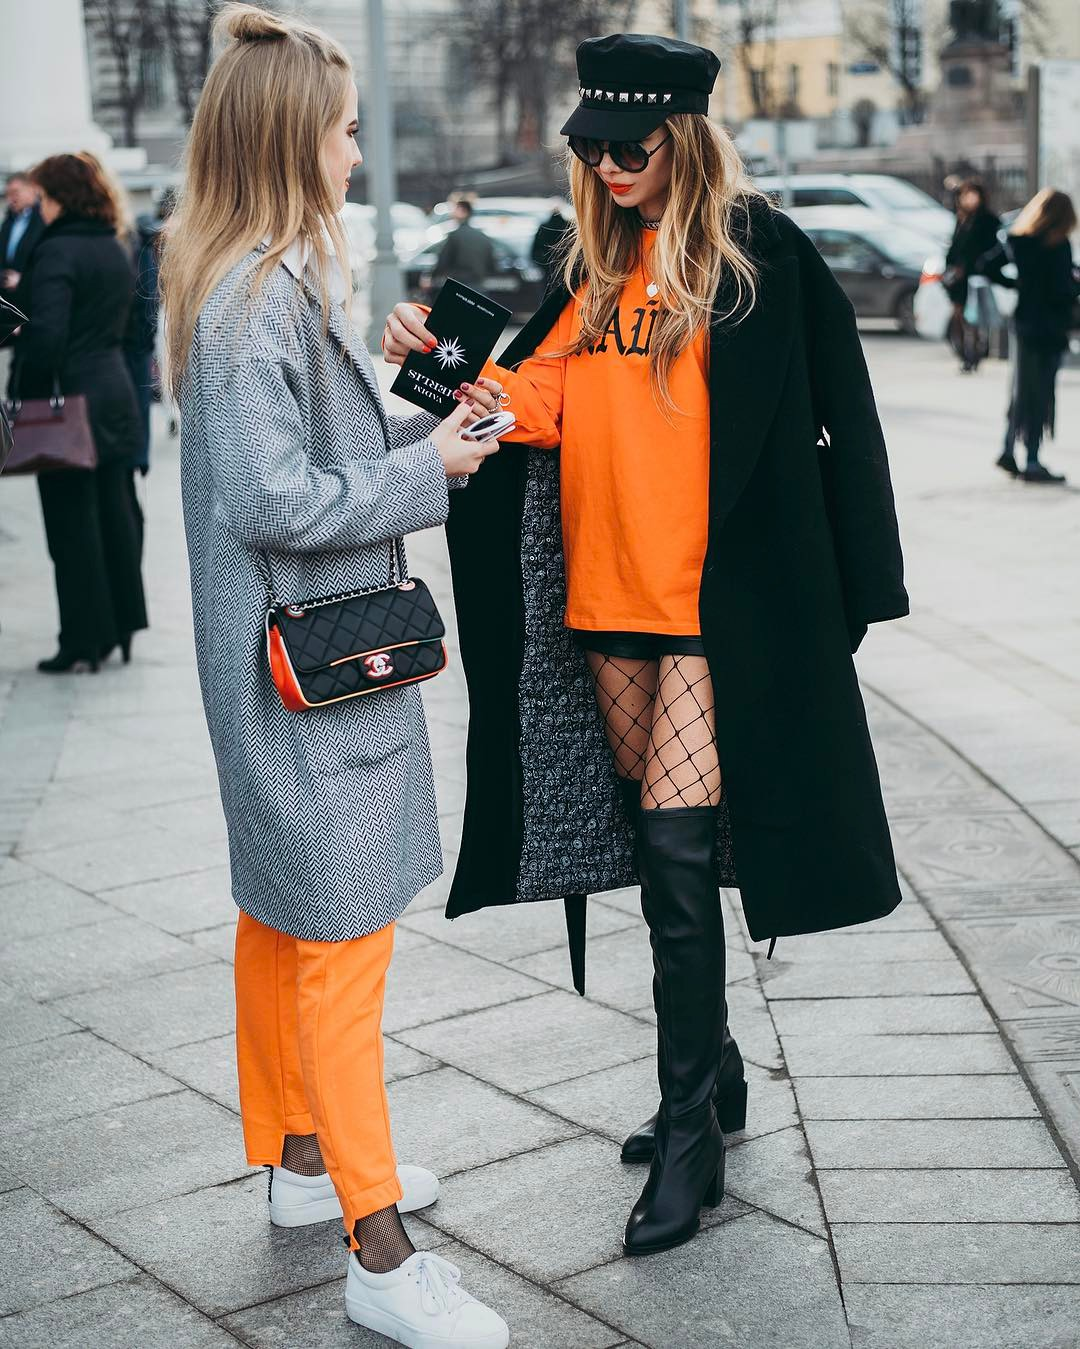 Street fashion blogger